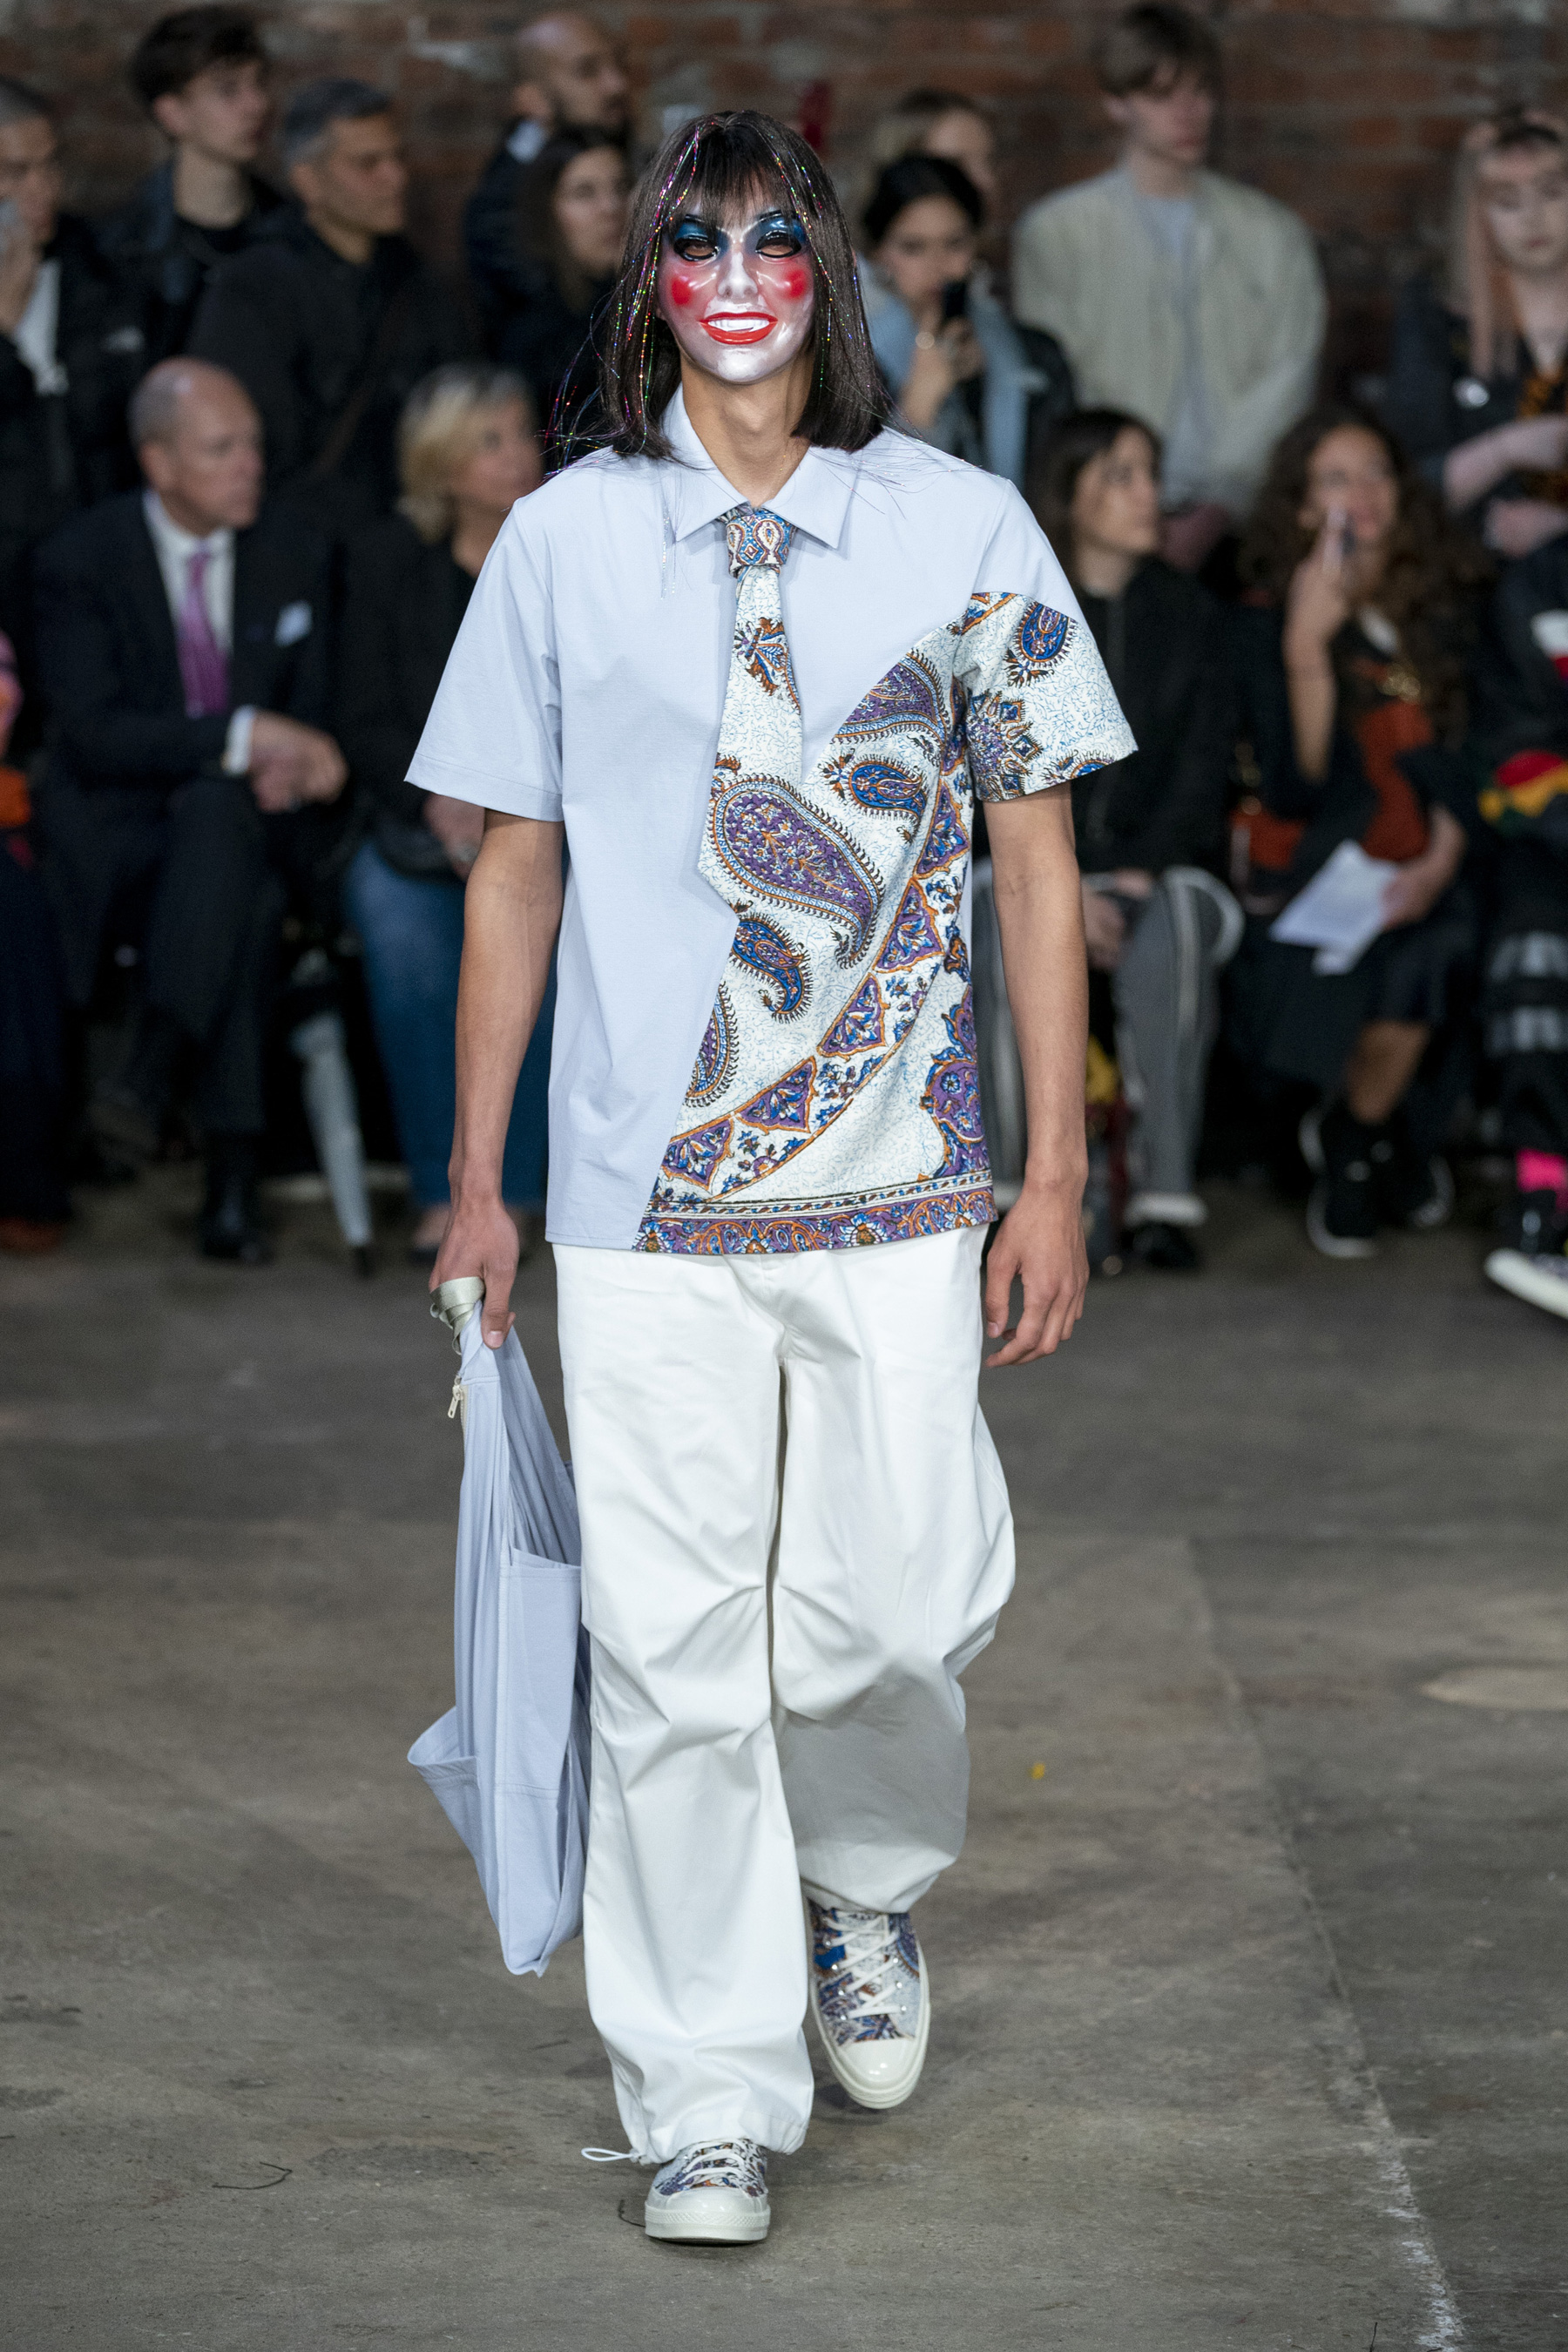 Paria Farzaneh Spring 2020 Men's Fashion Show